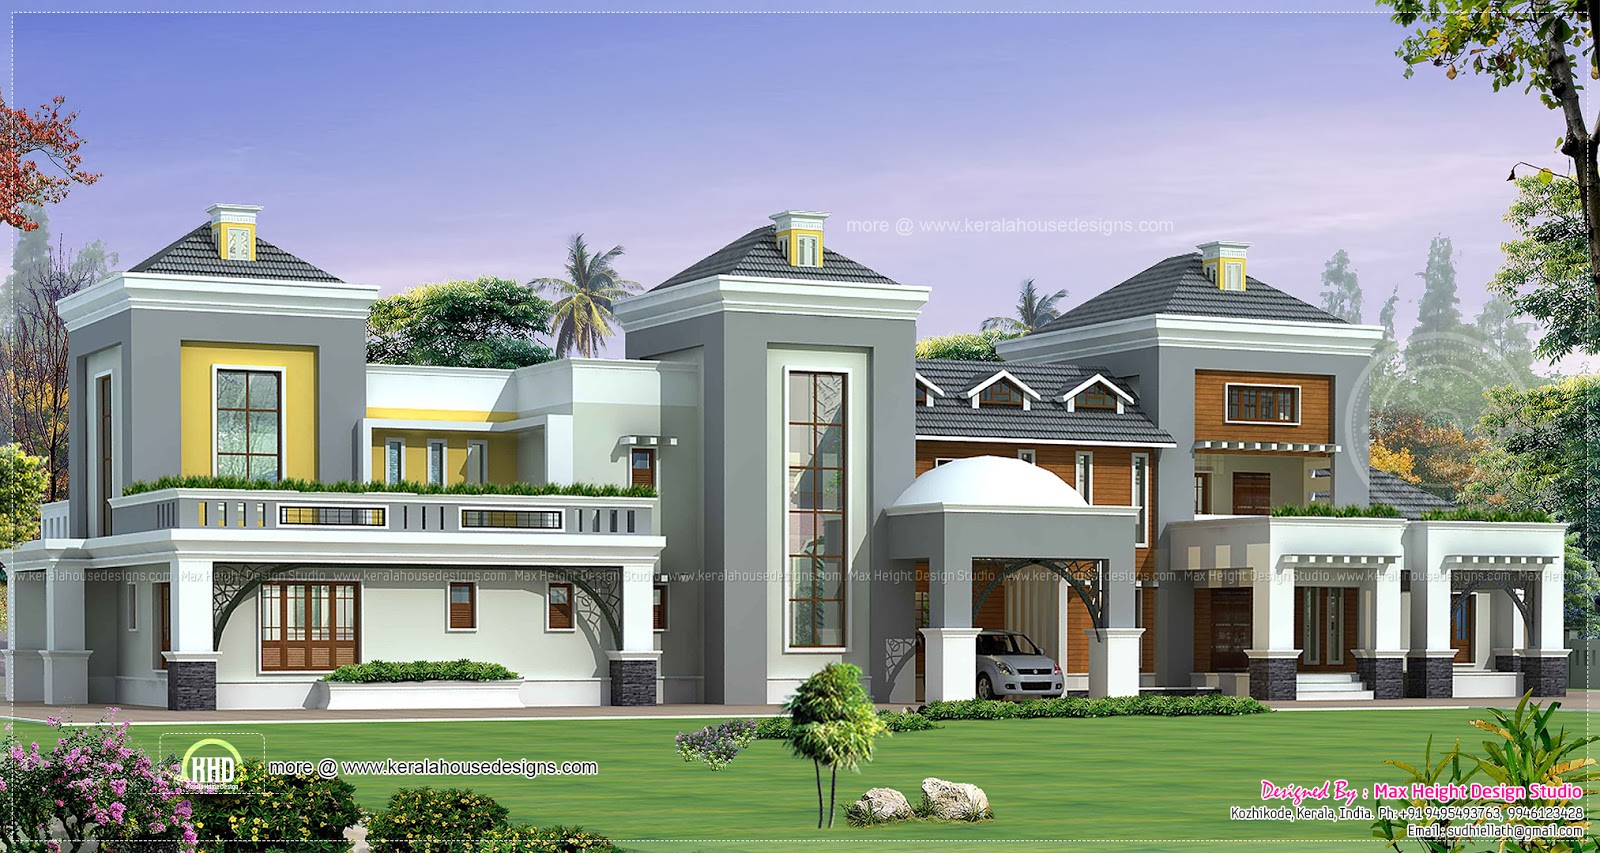 luxury house plan with photo kerala home design and floor plans. Black Bedroom Furniture Sets. Home Design Ideas